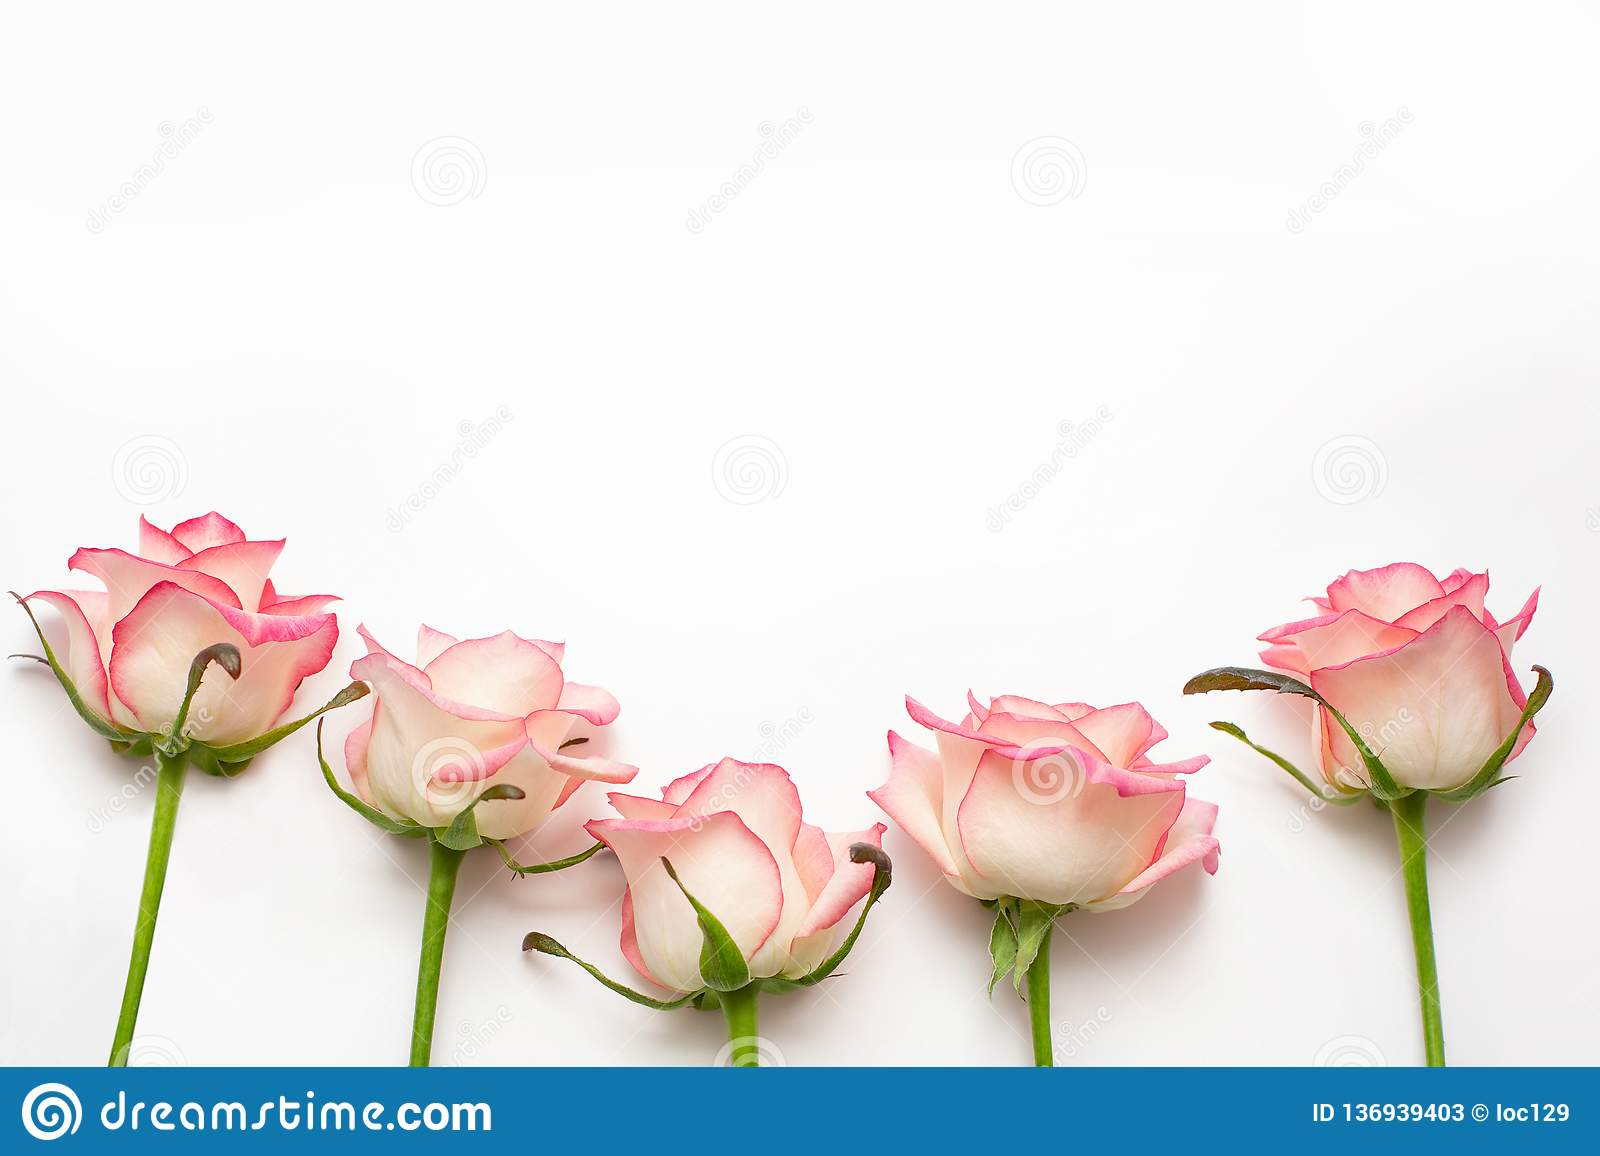 Five pink roses on a white background, beautiful fresh roses